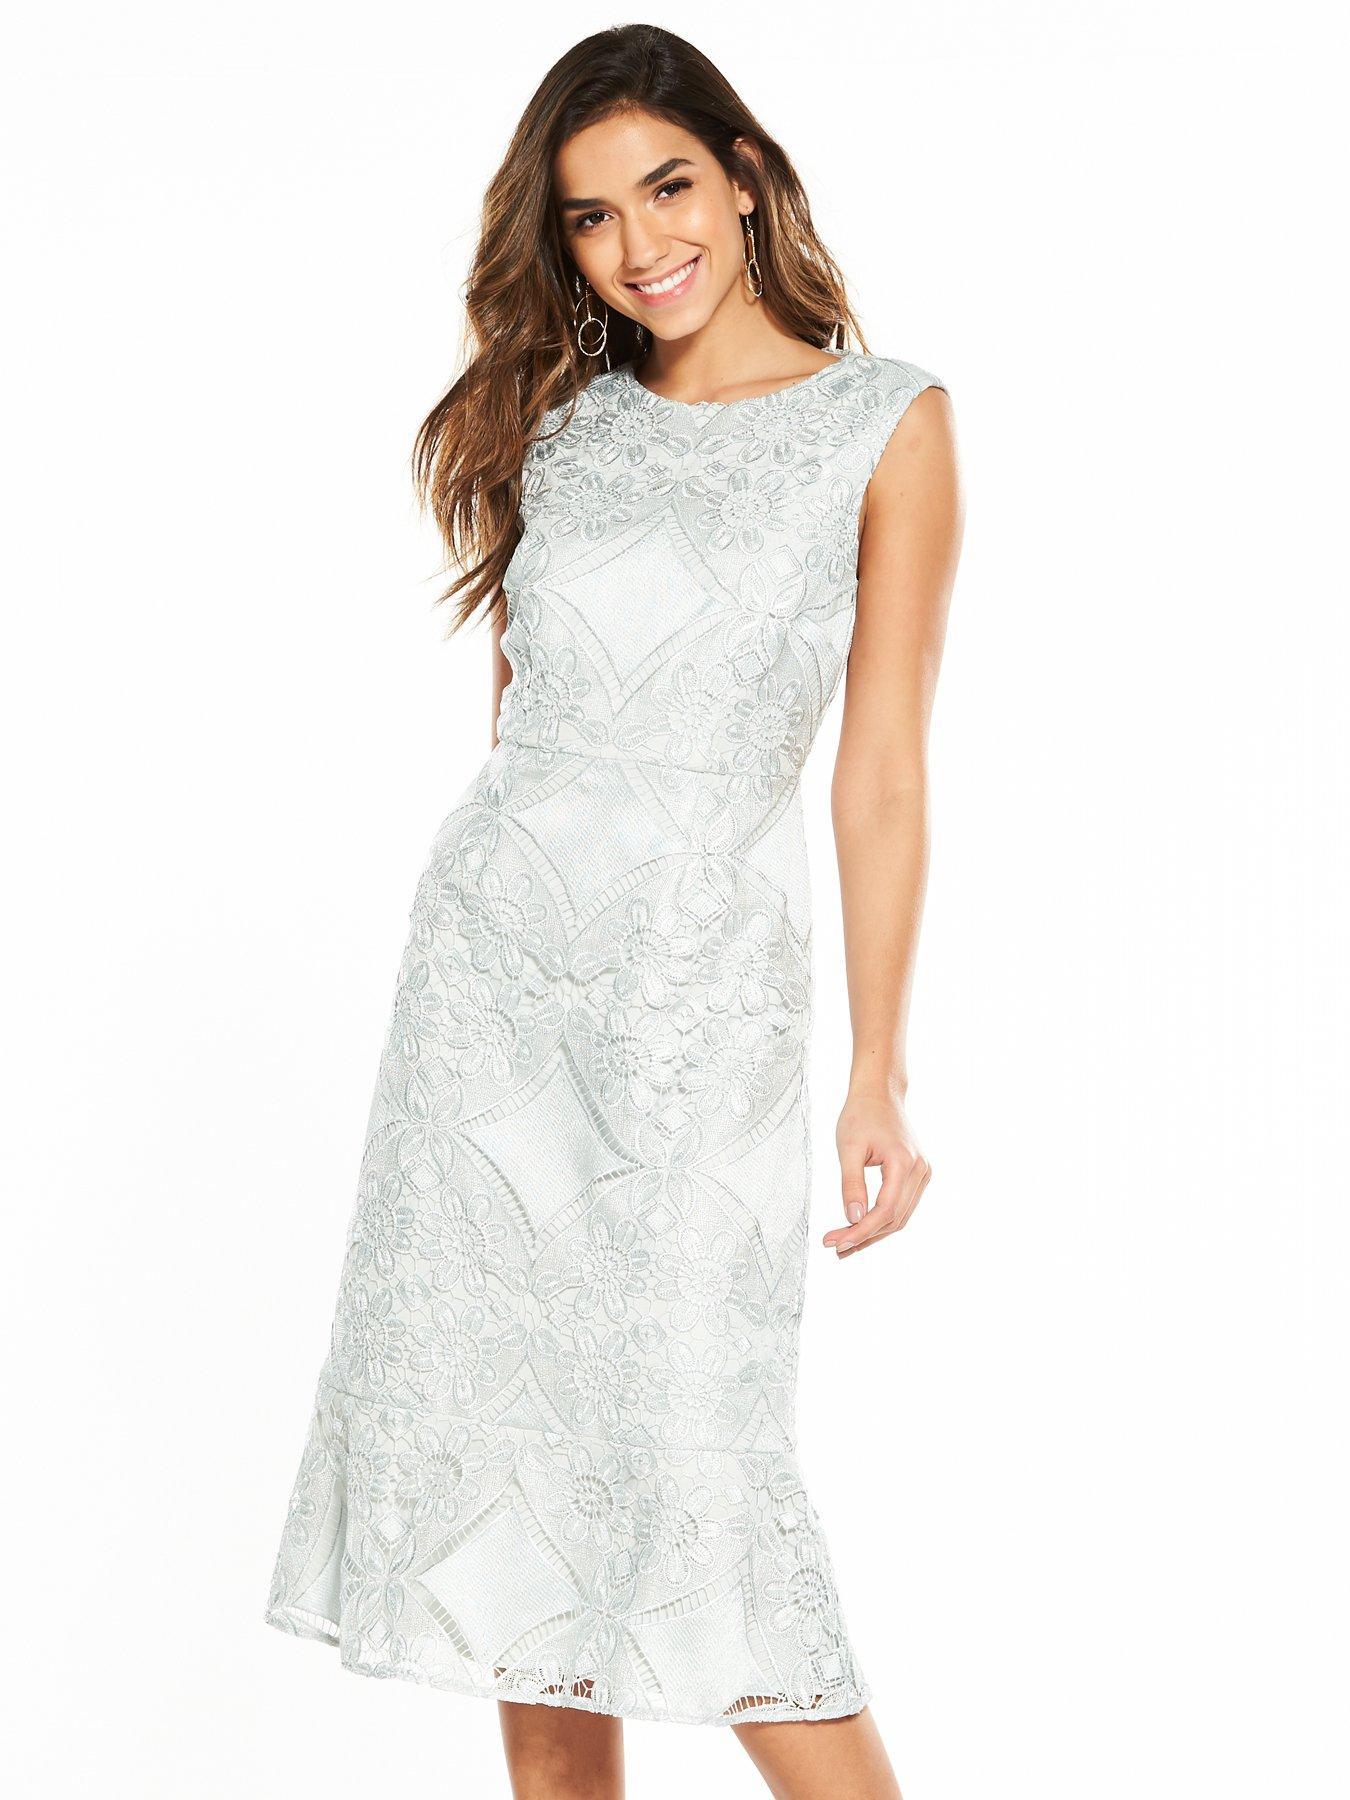 Phase Eight Jemime Lace Dress - Blue Opal